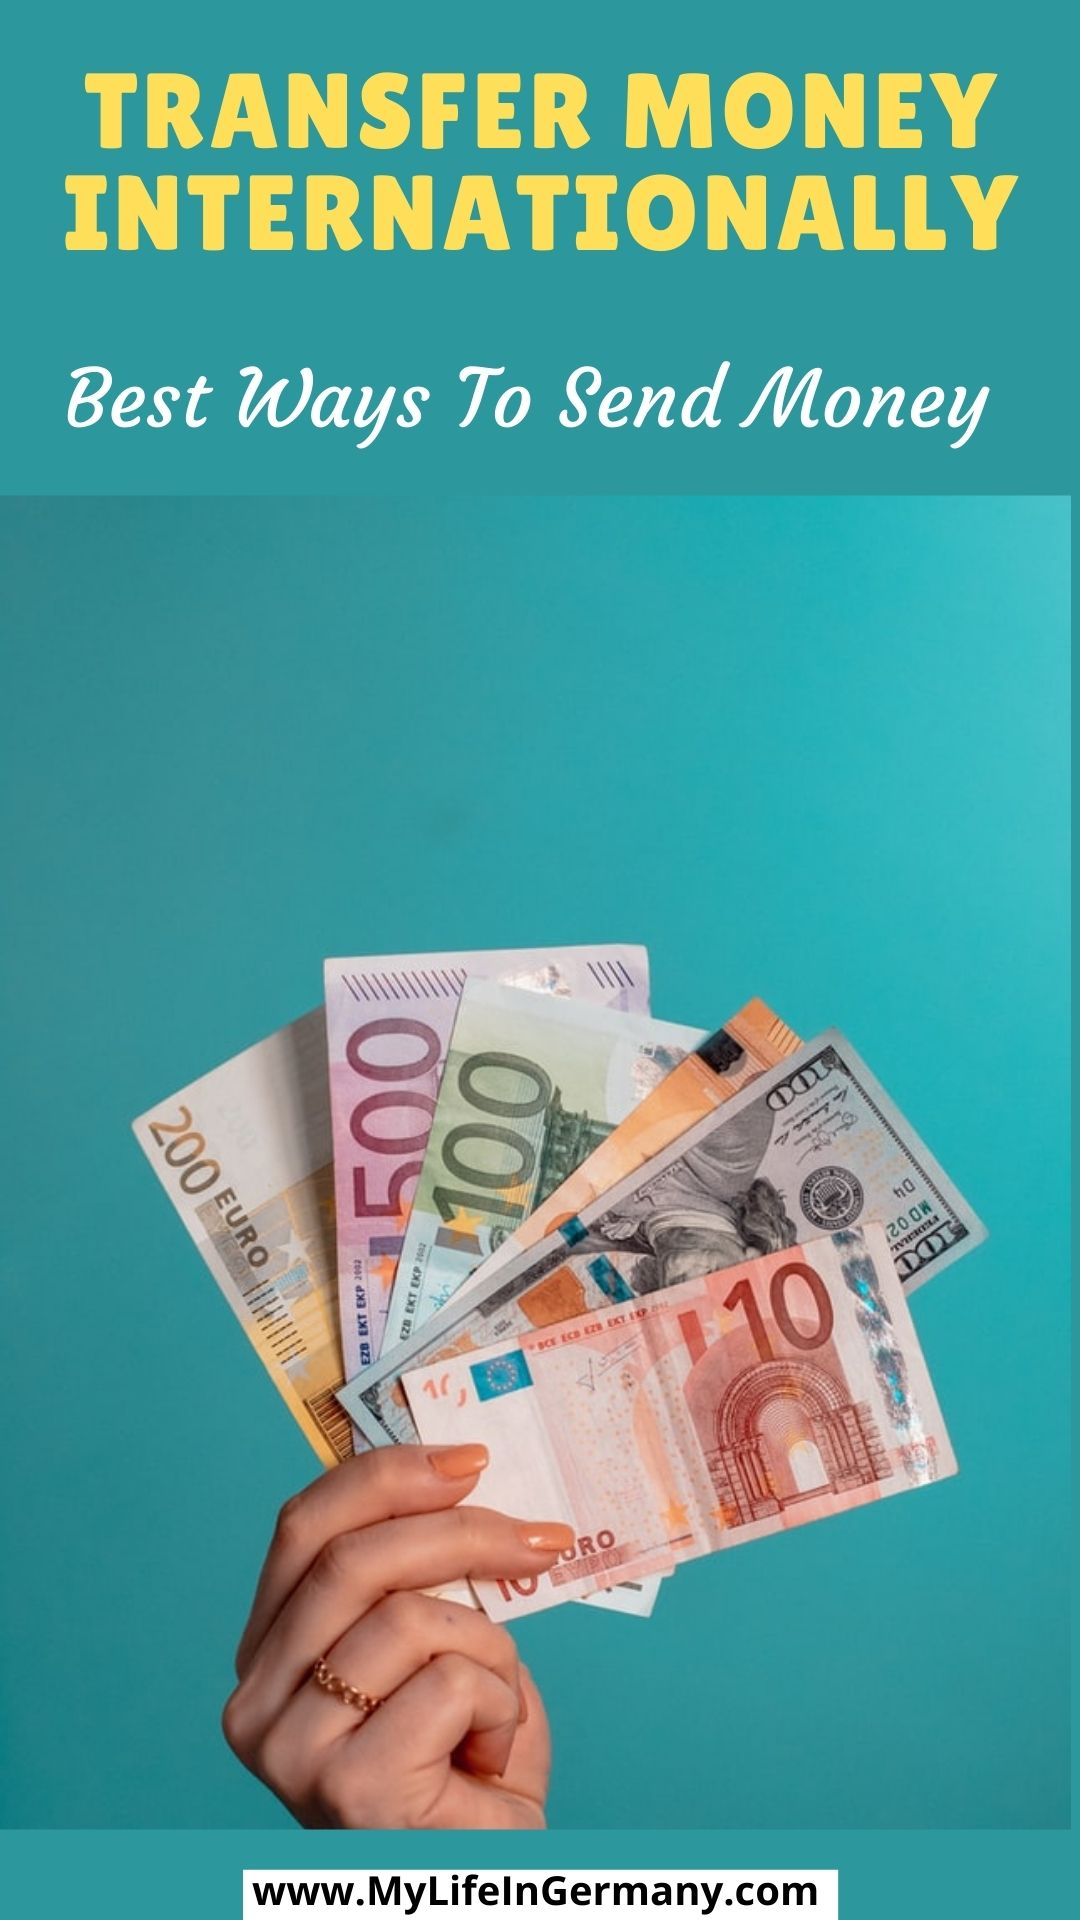 pinterest edited_transfer money internationally_best ways to send money to or from Germany_my life in germany_hkwomanabroad